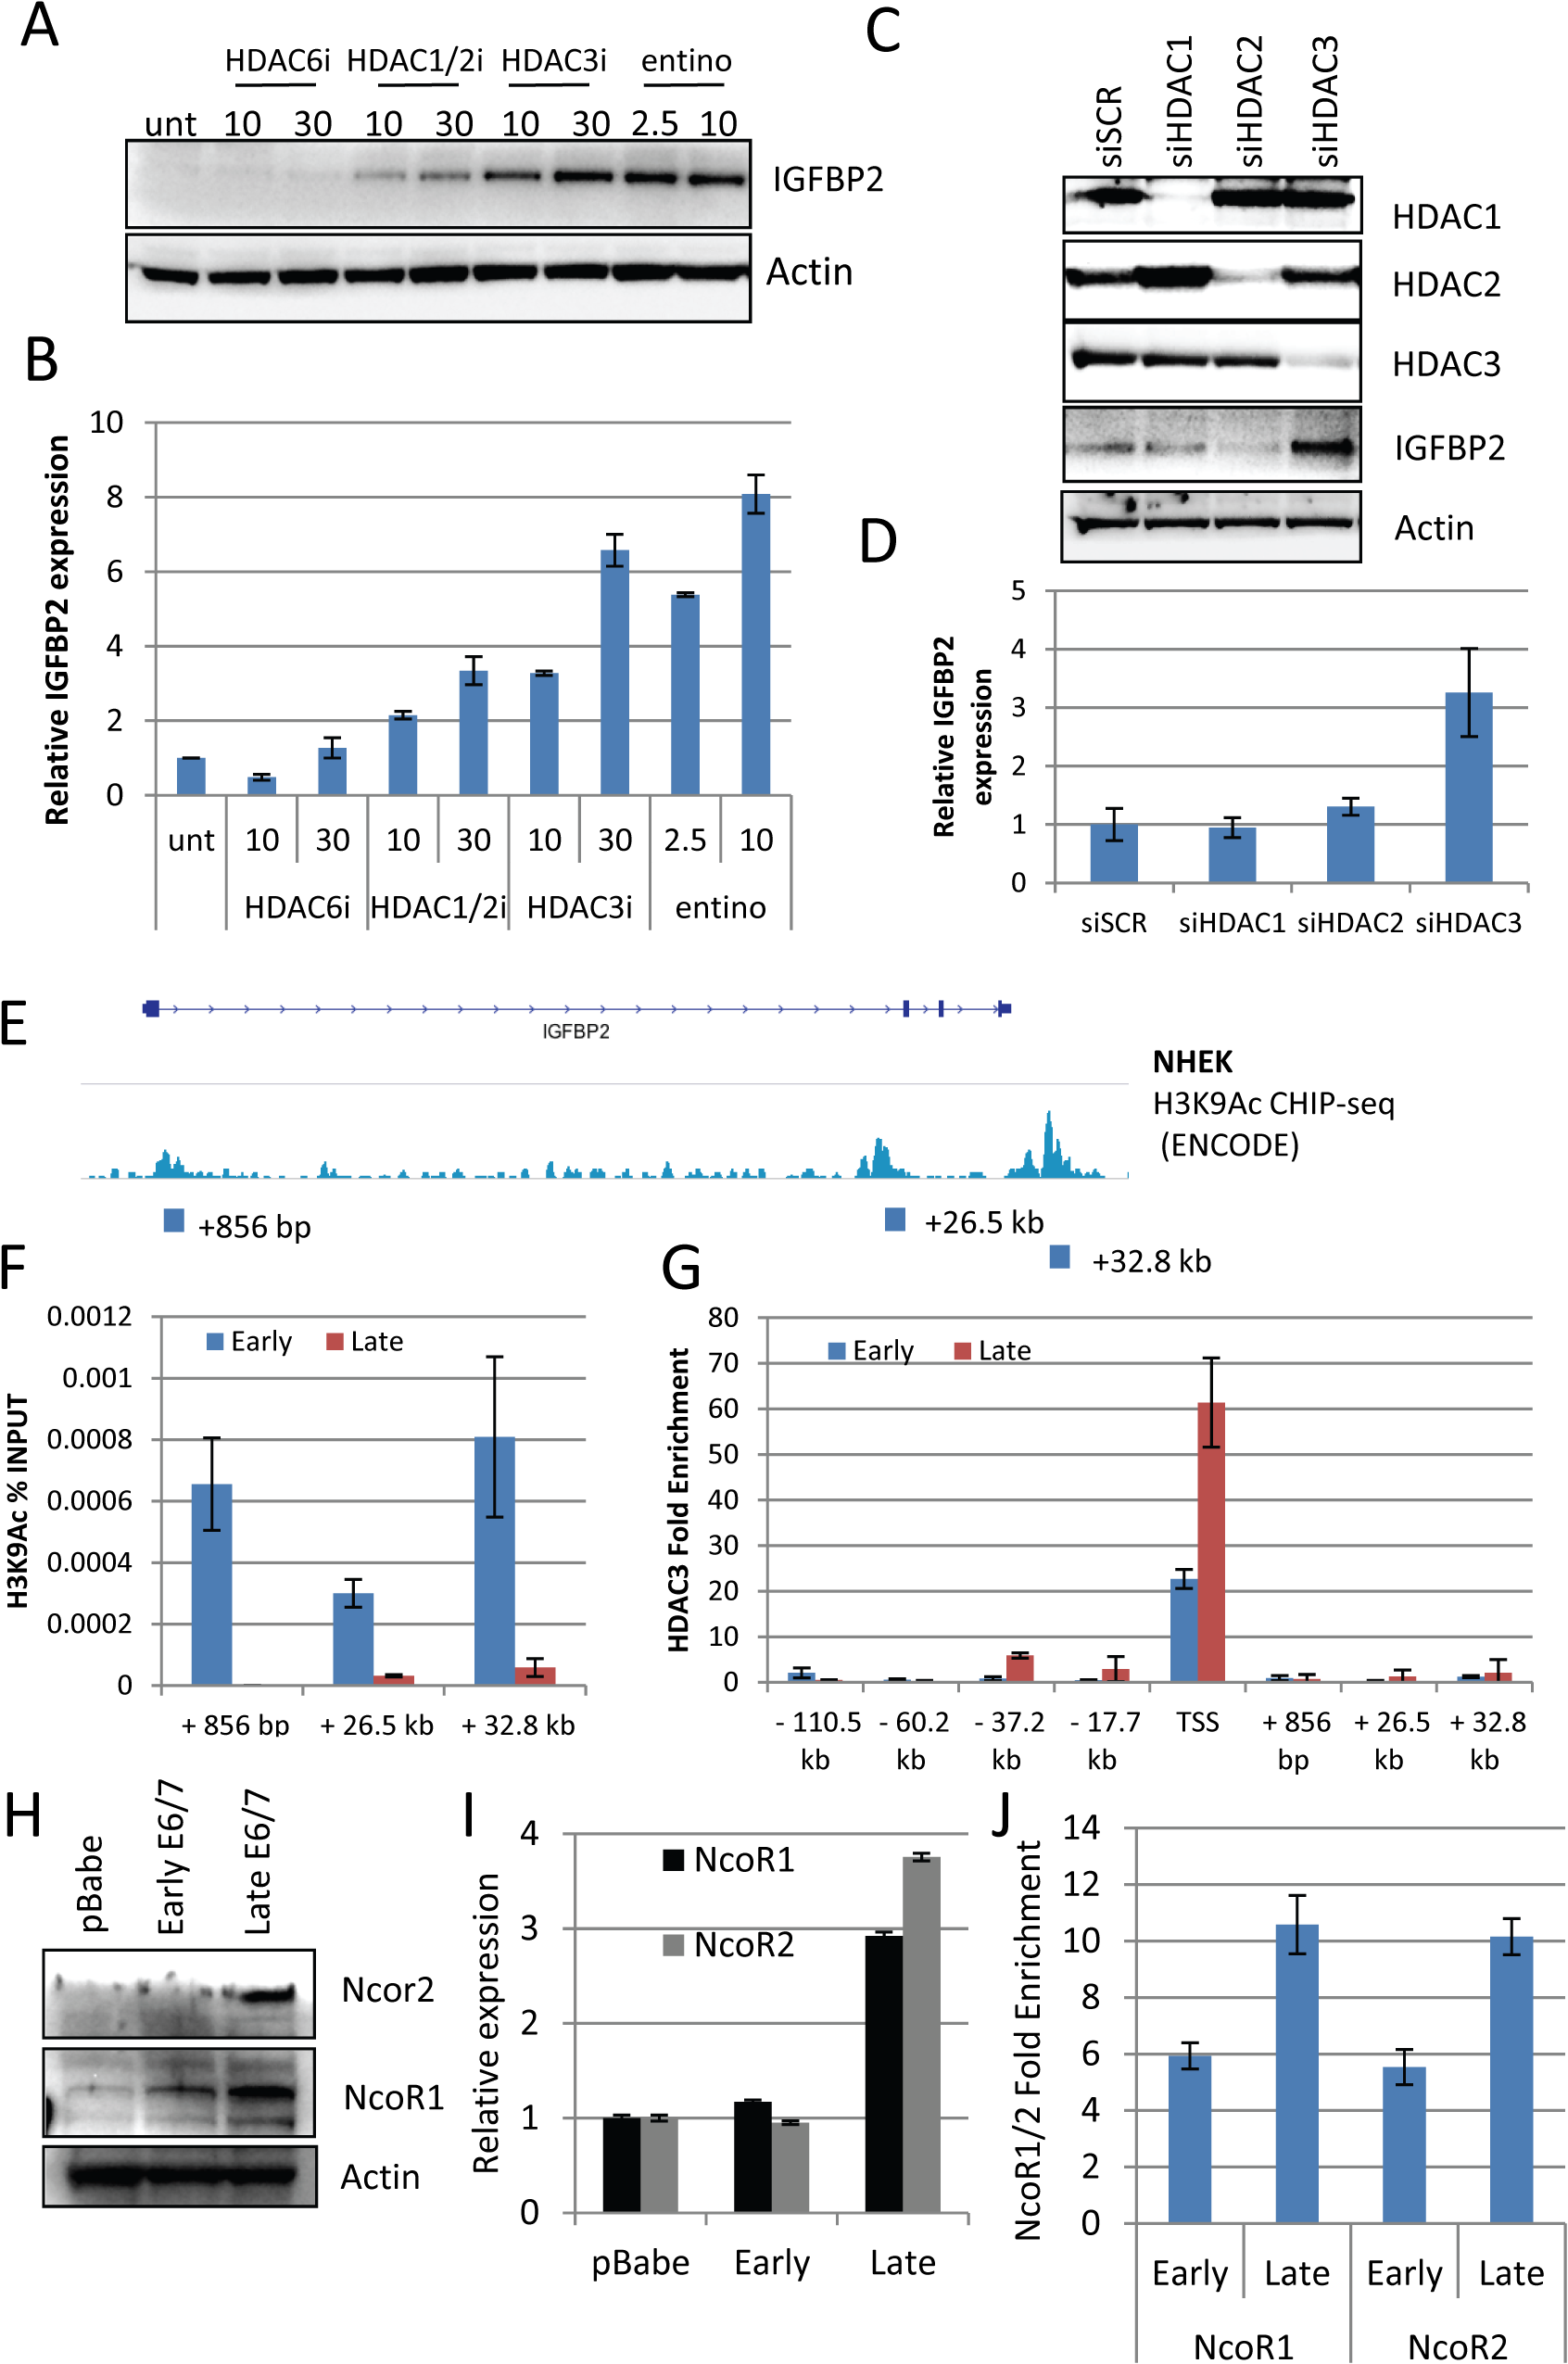 HDAC3 is a critical regulator of IGFBP2 expression.